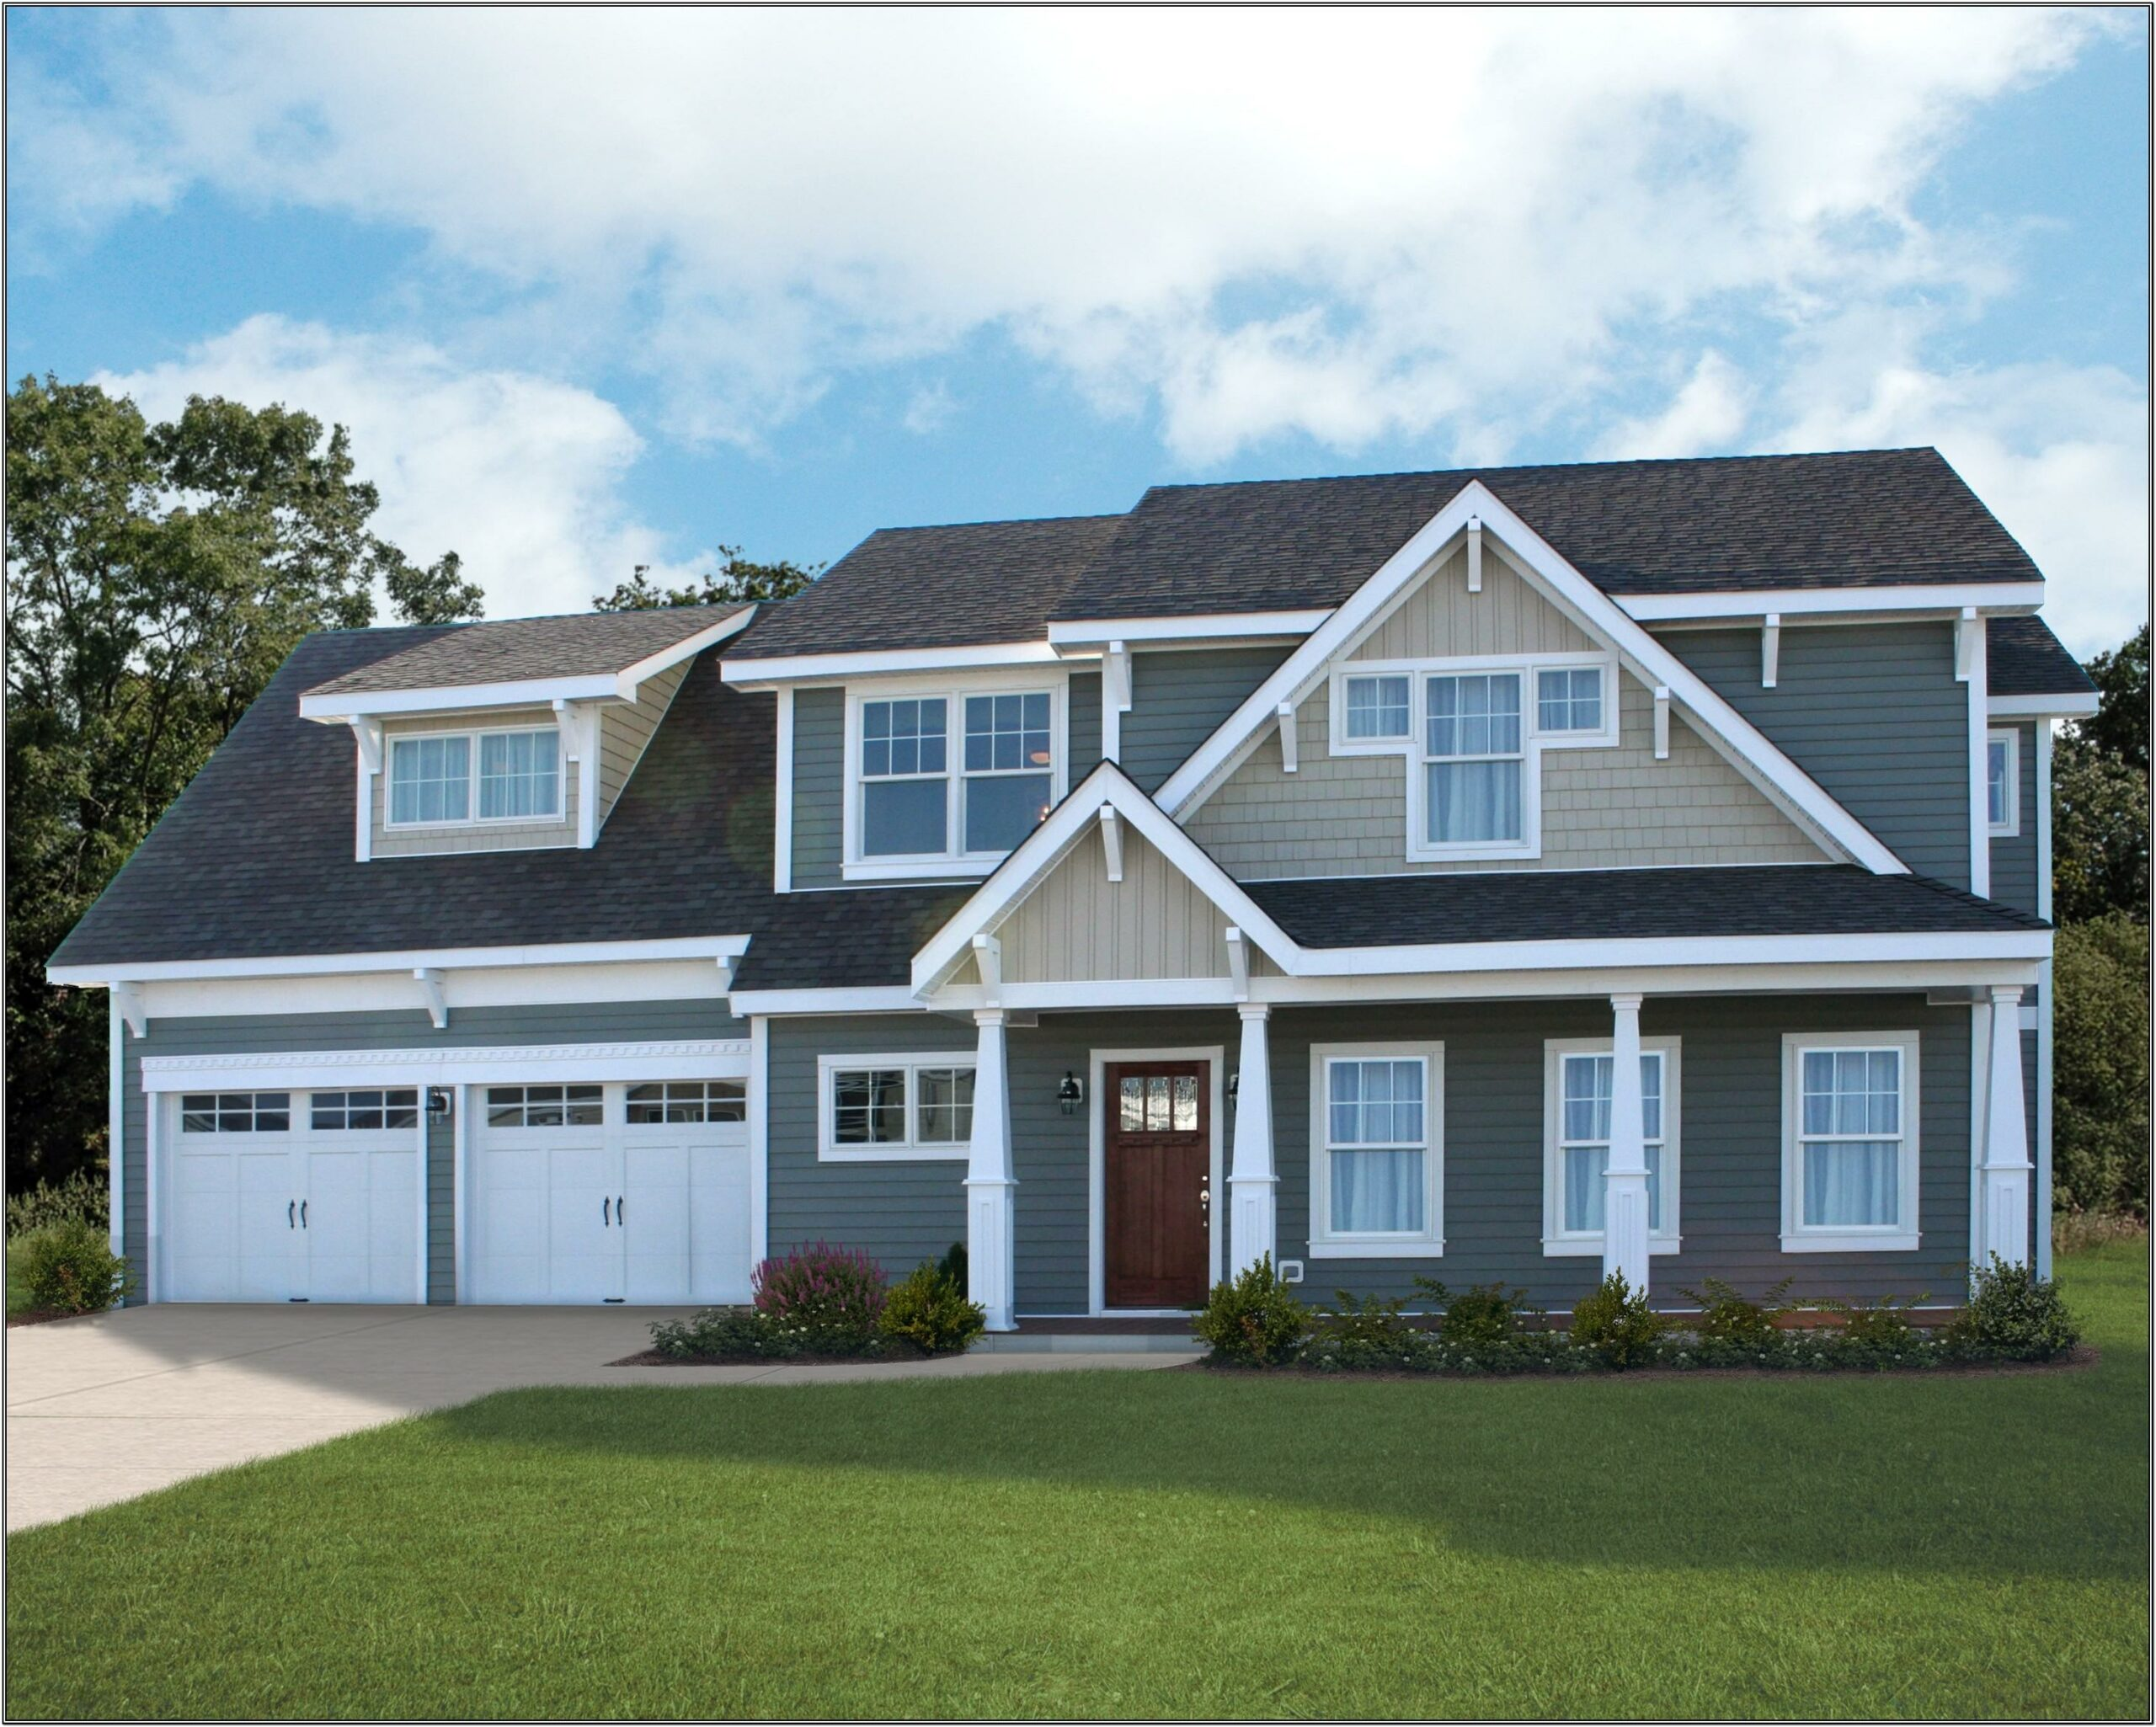 Traditional Home Exterior Paint Colors